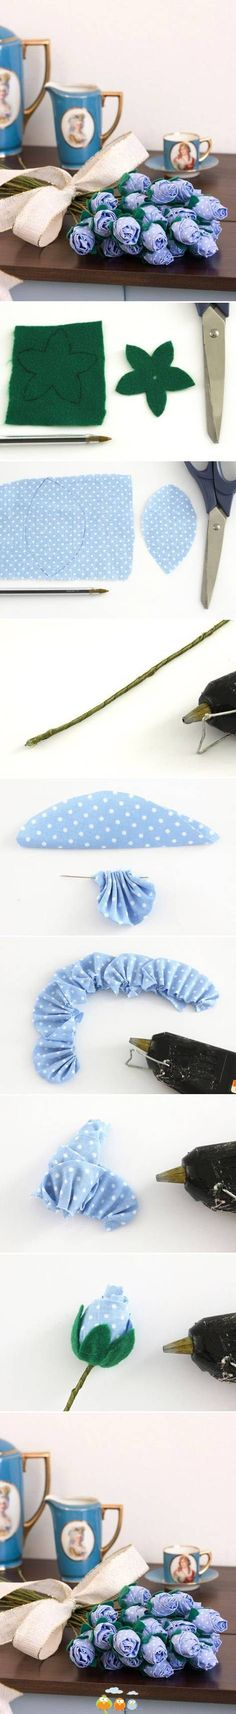 fabric roses, blue flowers, fabric flowers, sewing room decor, diy tutorial, cloth flowers, paper flowers, flower tutorial, diy projects